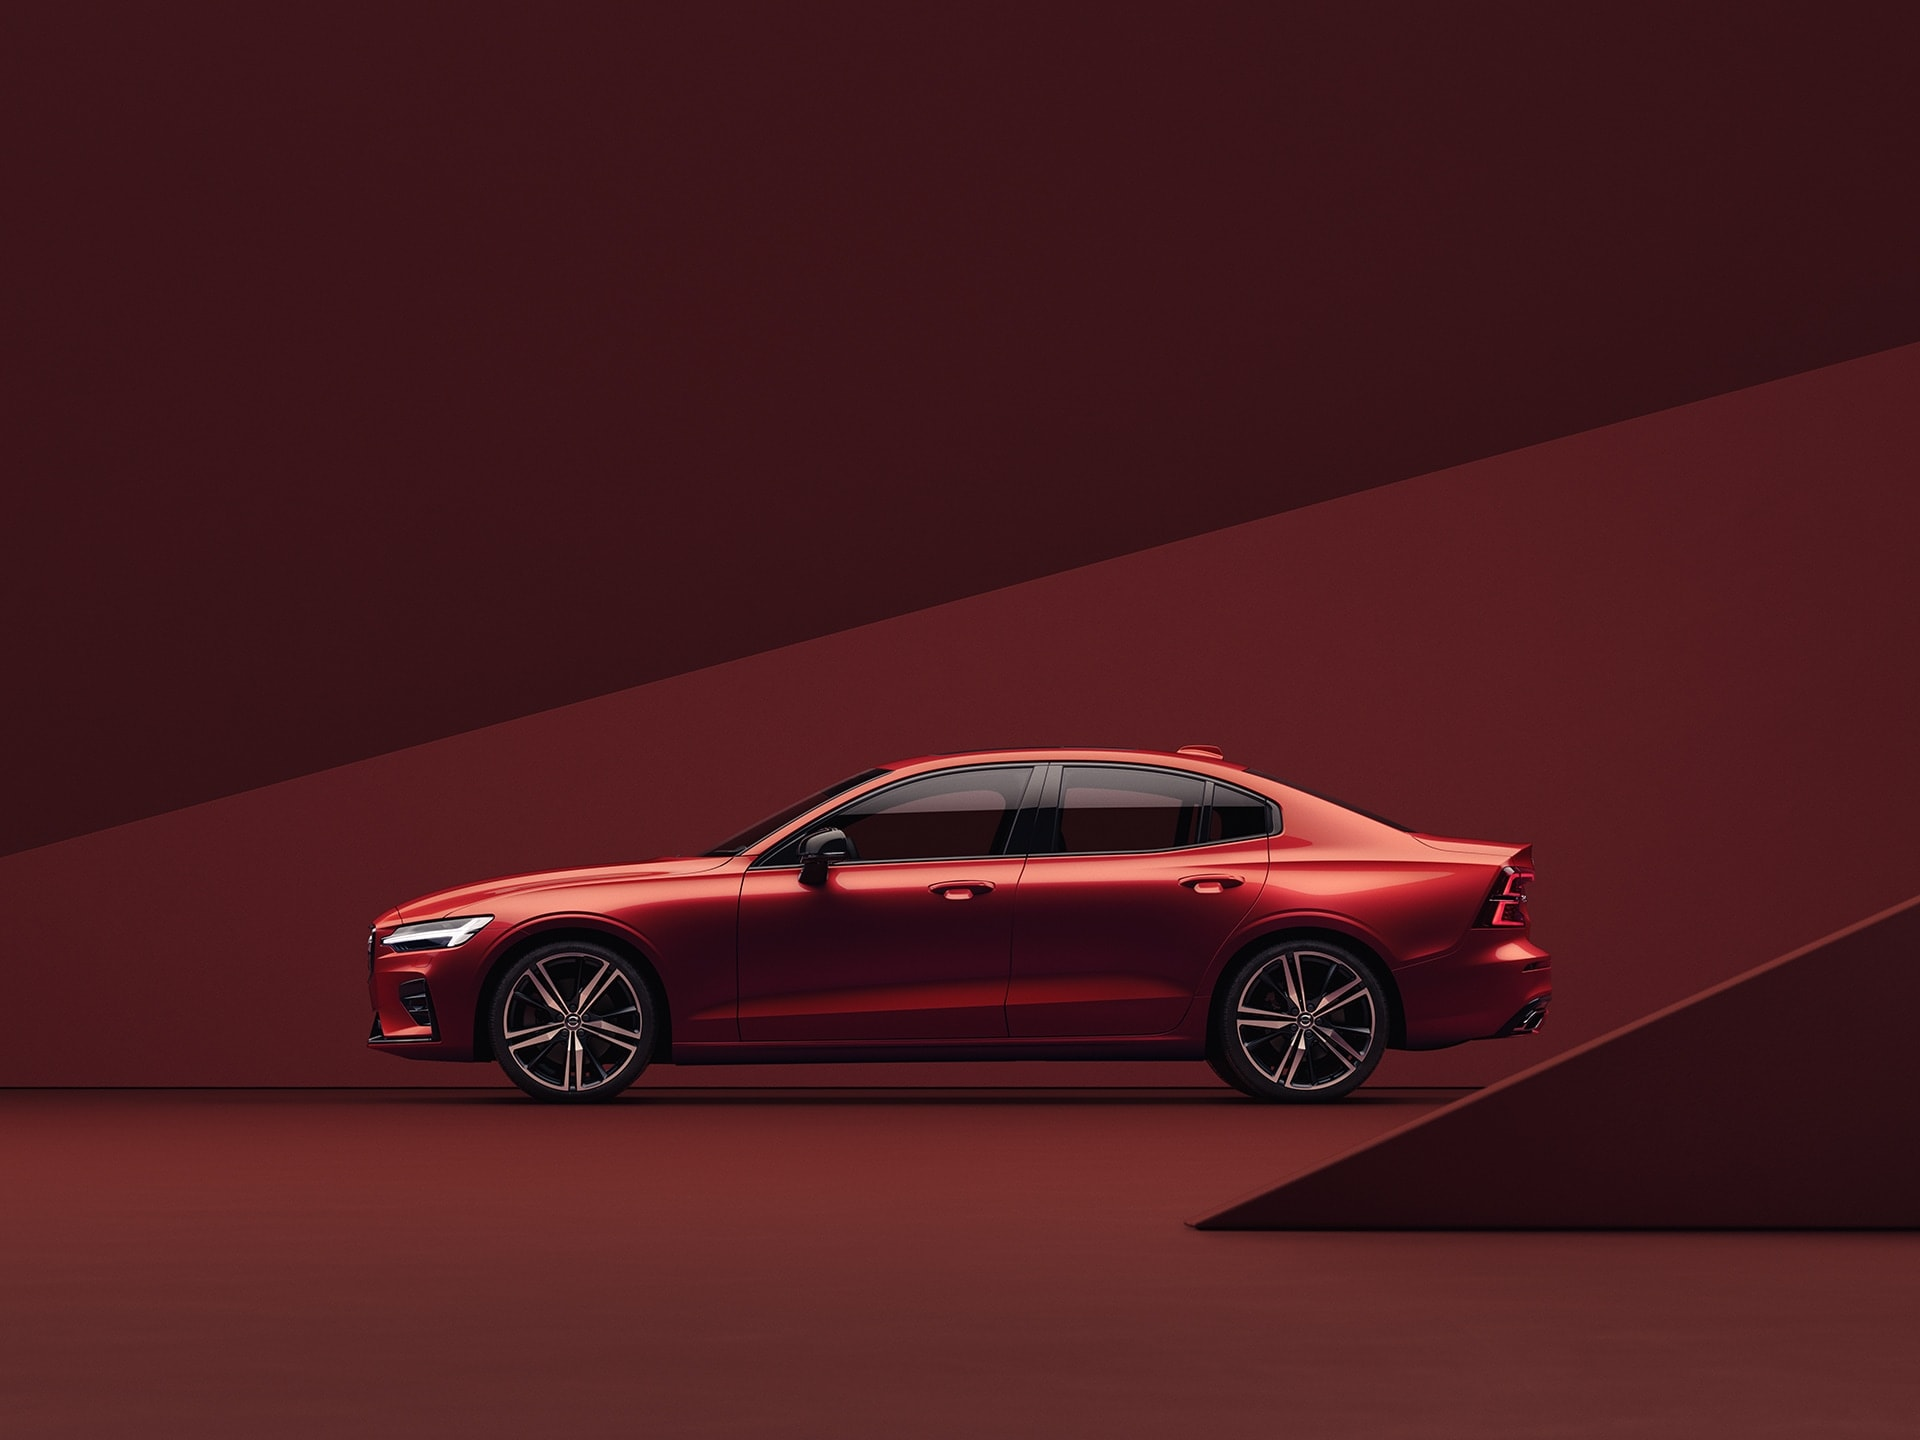 A red Volvo S60, parked in a red surrounding.